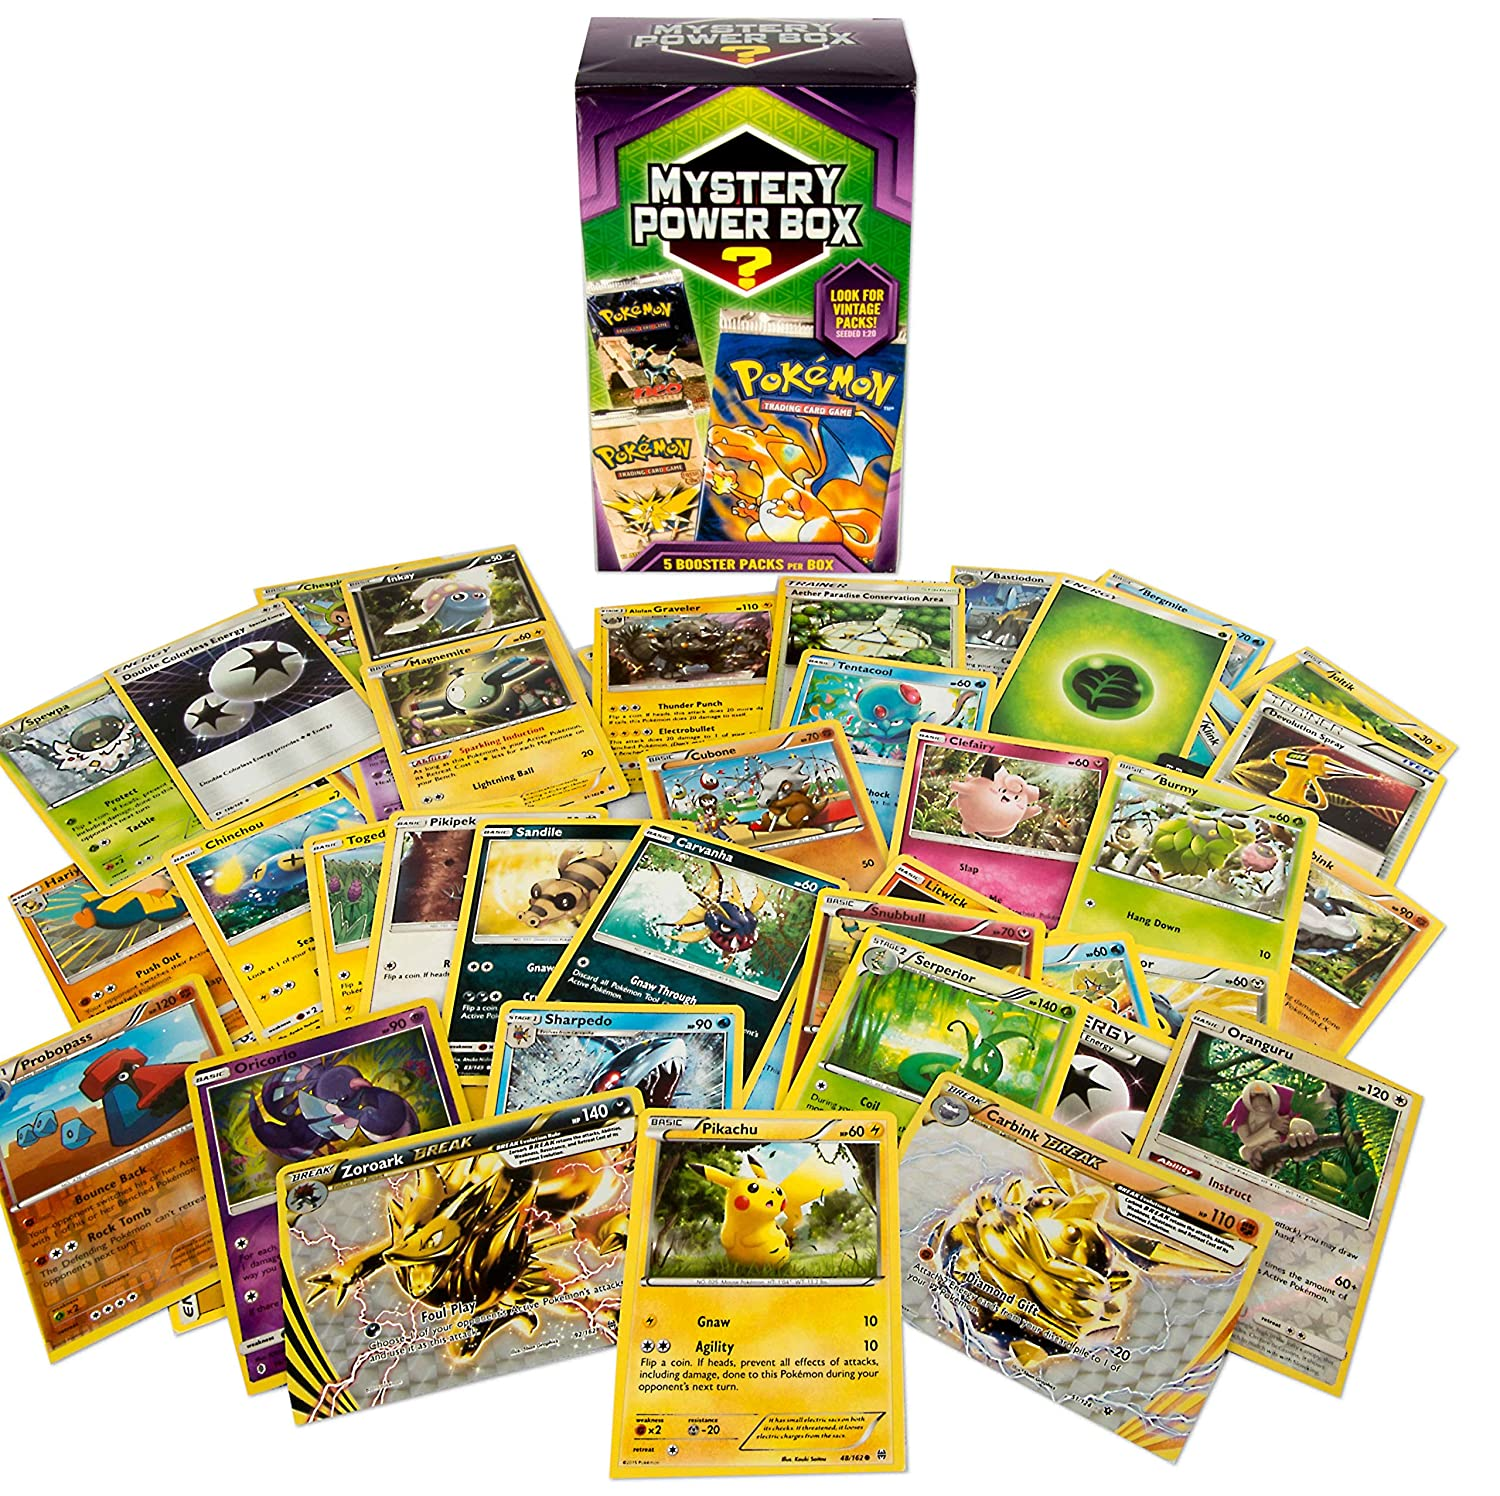 Masywnie Amazon.com: Pokemon Cards Mystery Power Box 5-5 Booster Pack: Toys CV71